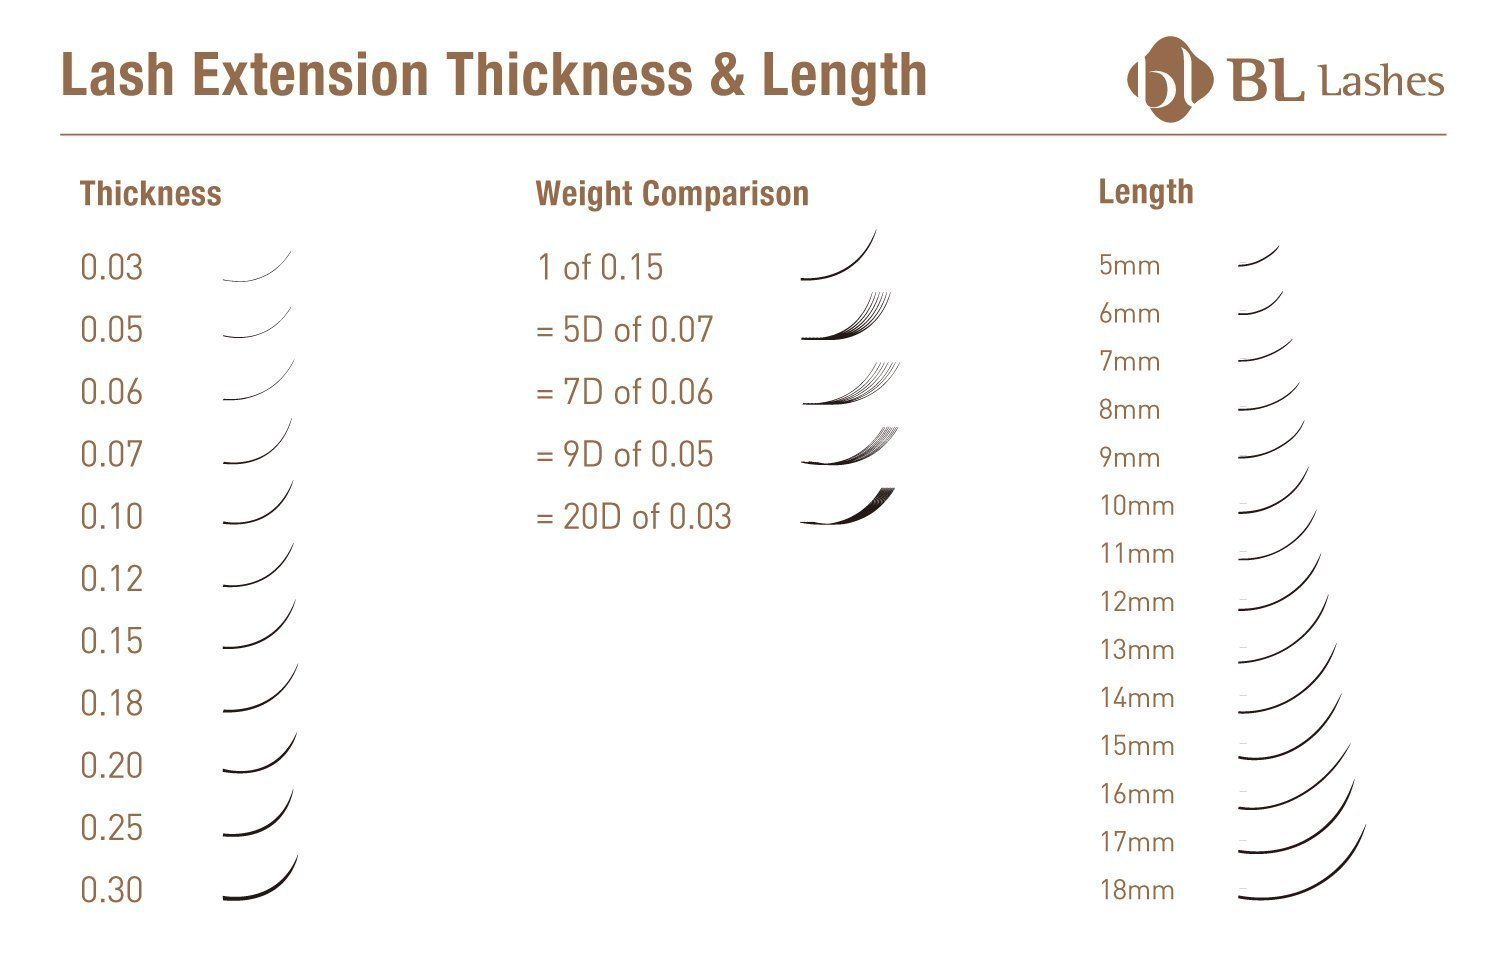 blink ez laser Lash extension thickness and weigh by BL and Blink lashes - eyelash extension supplies and wholesale